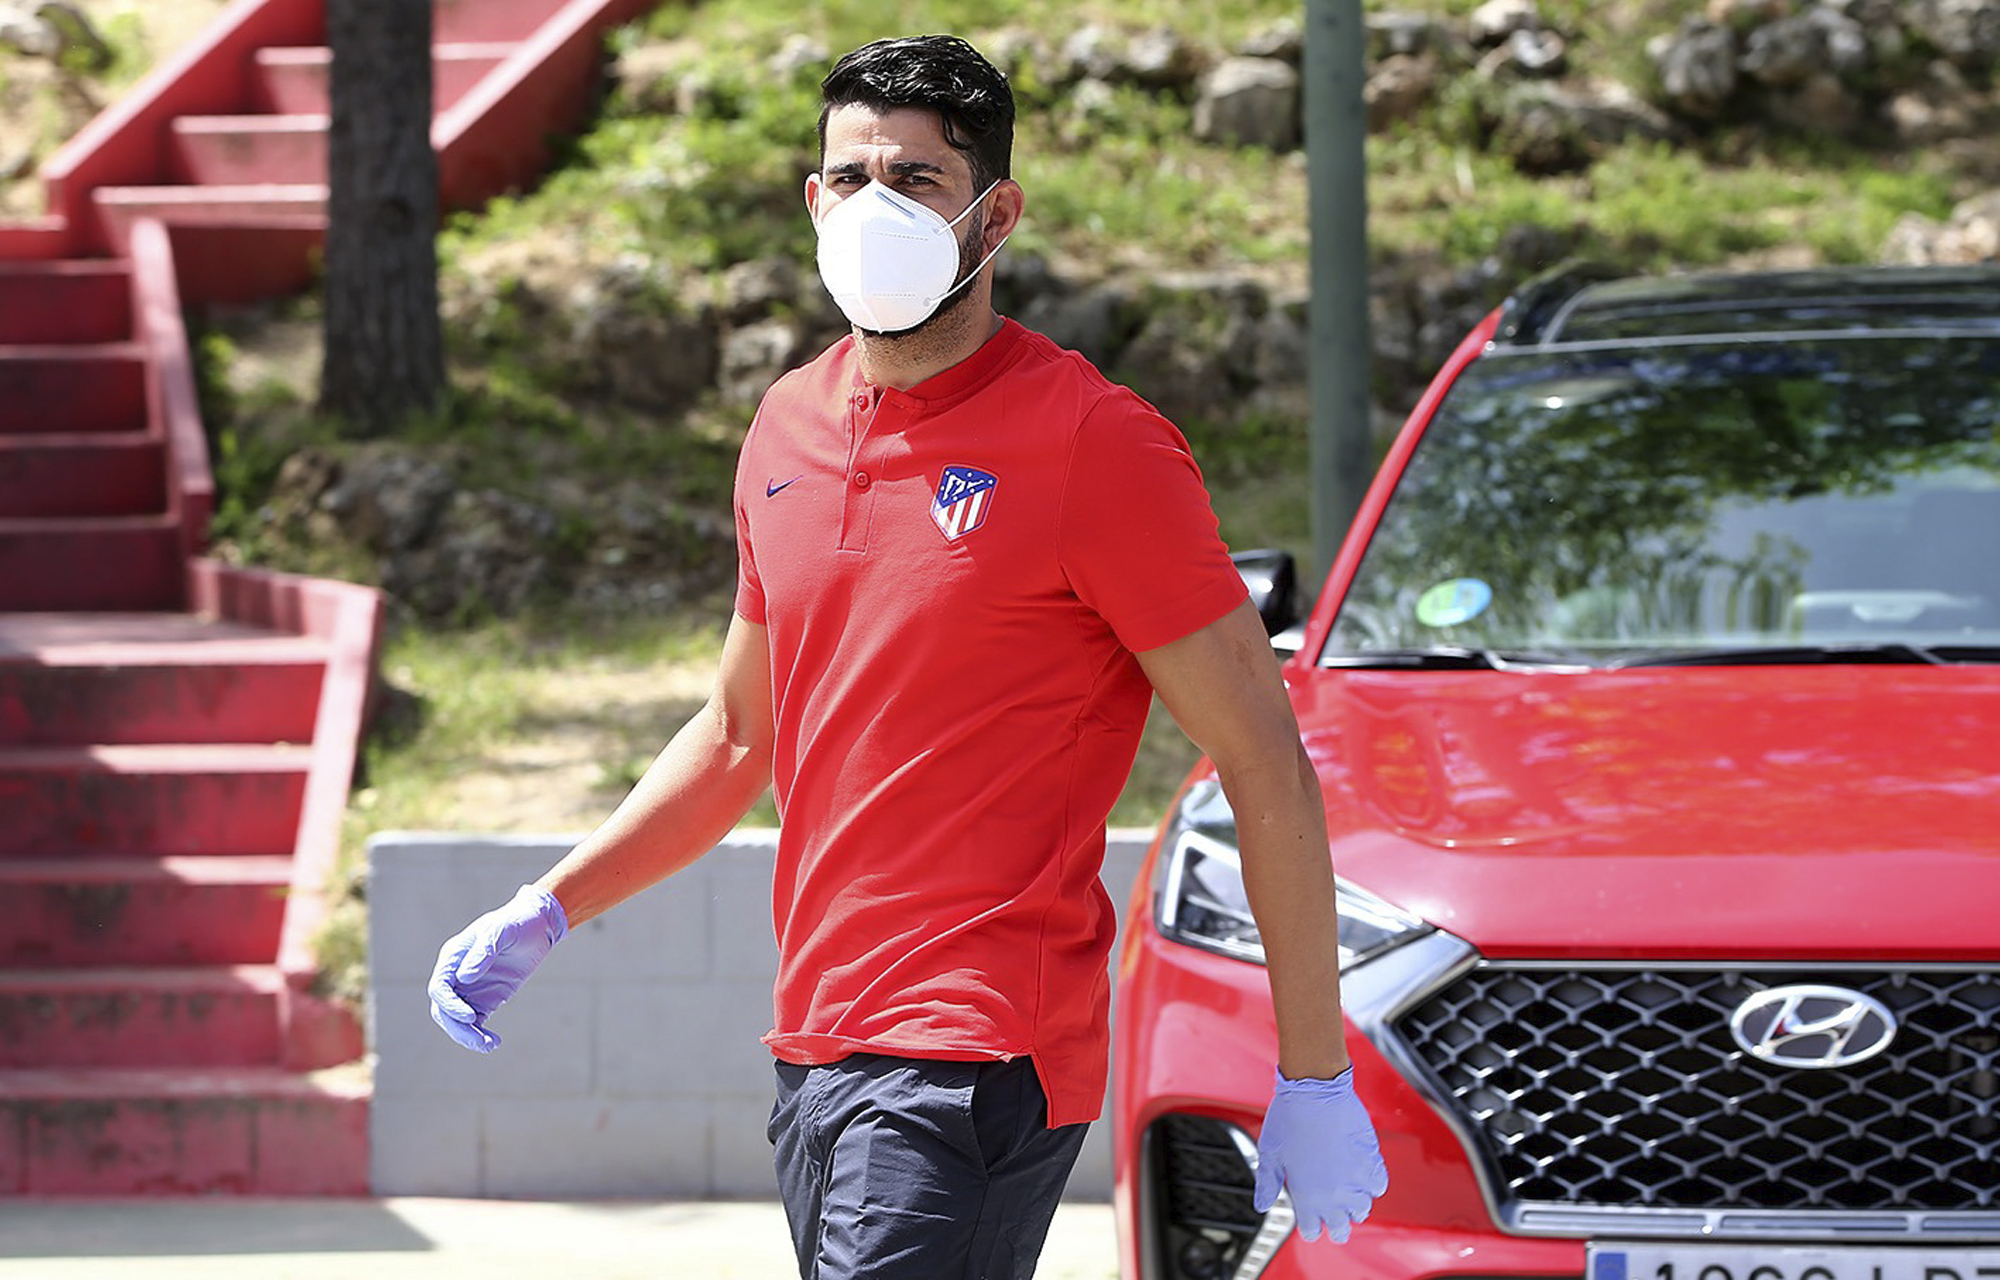 Diego Costa pleads guilty to tax fraud in Spain